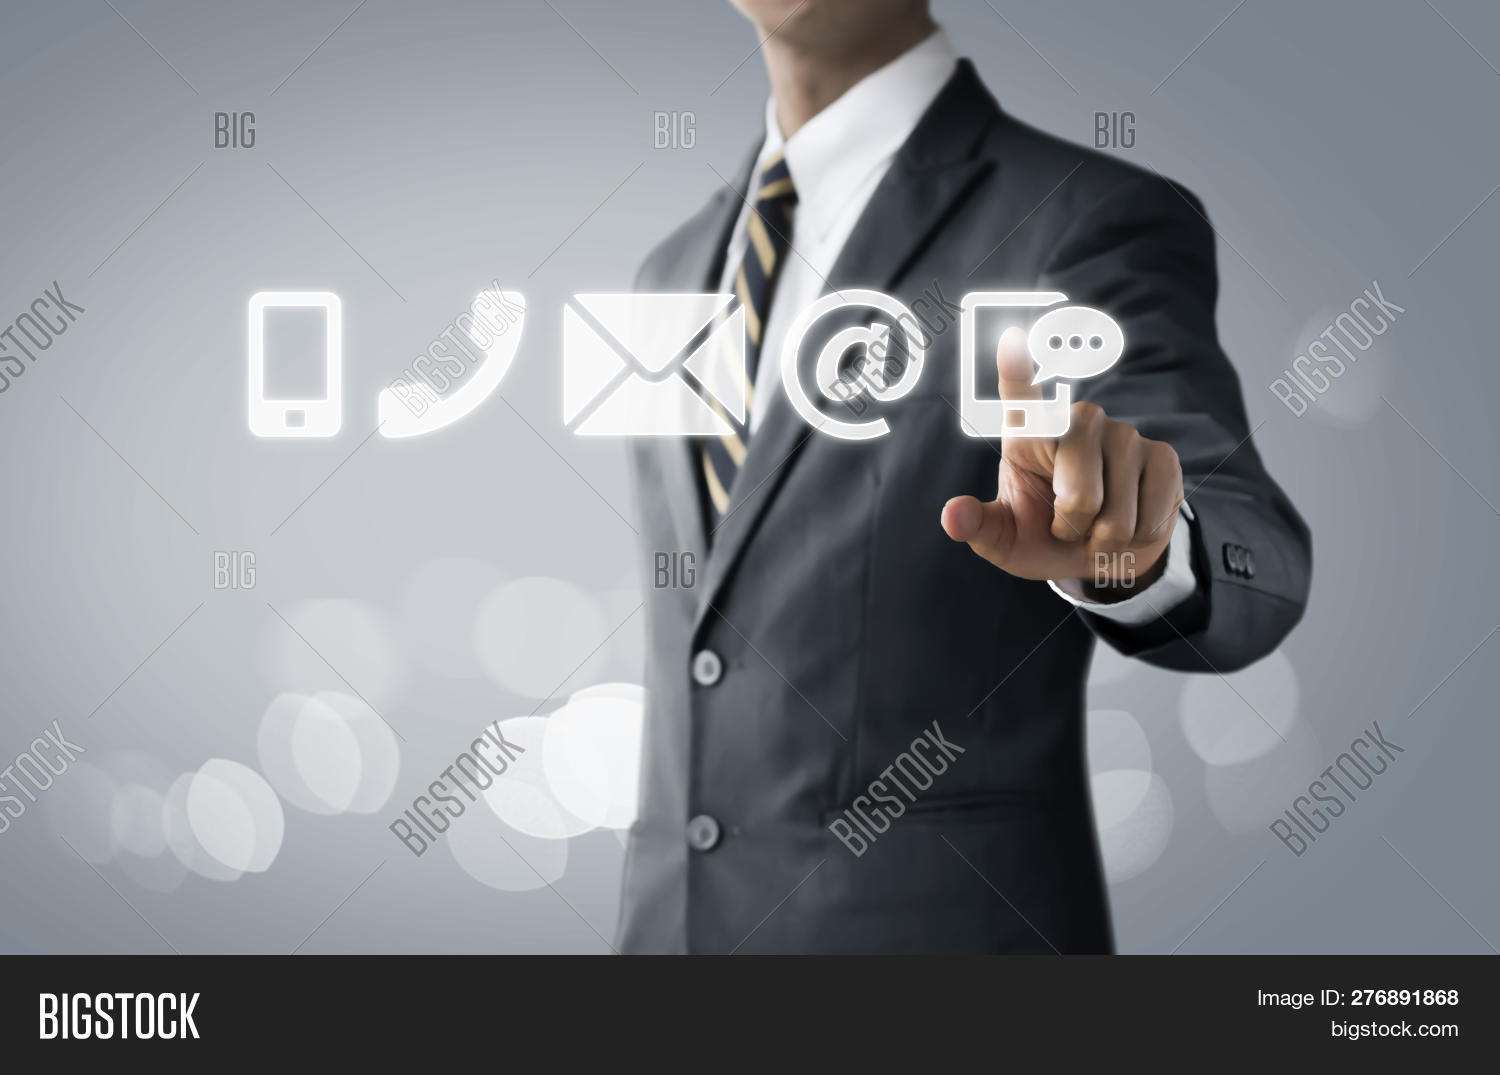 address,background,bright,business,businessman,button,call,care,center,client,communication,concept,connecting,connection,contact,customer,email,feedback,finance,finger,hand,help,icon,illustration,information,internet,mail,media,message,mobile,network,phone,press,push,relationship,service,social,support,symbol,technology,telephone,touch,us,virtual,web,white